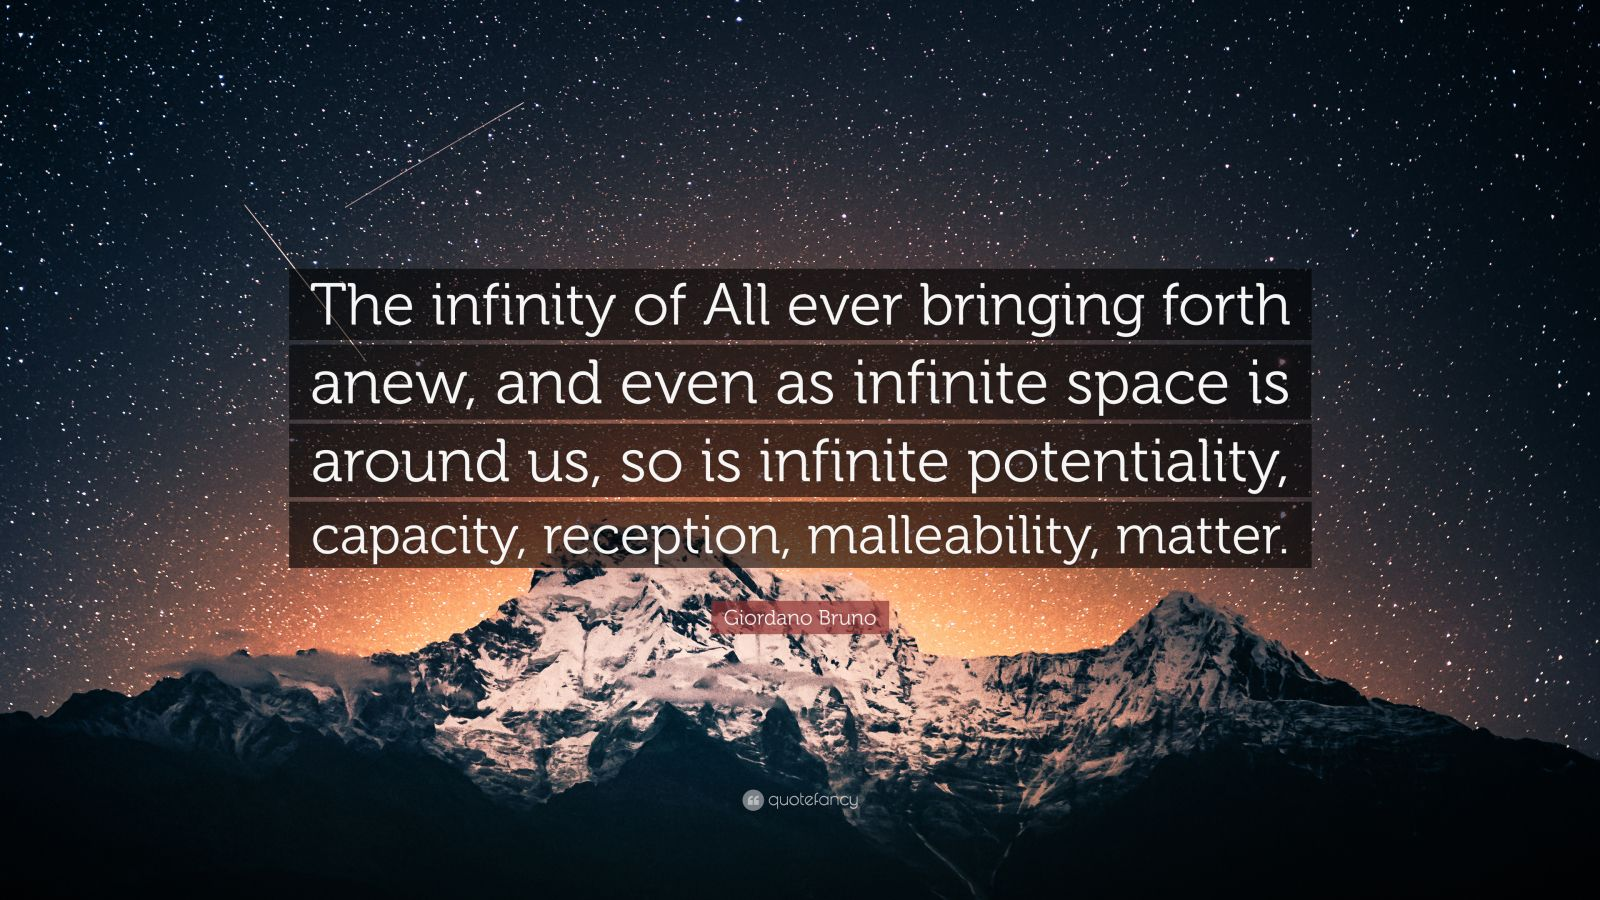 """Giordano Bruno Quote: """"The infinity of All ever bringing forth anew, and even as infinite space is around us, so is infinite potentiality, capacity, reception, malleability, matter."""""""